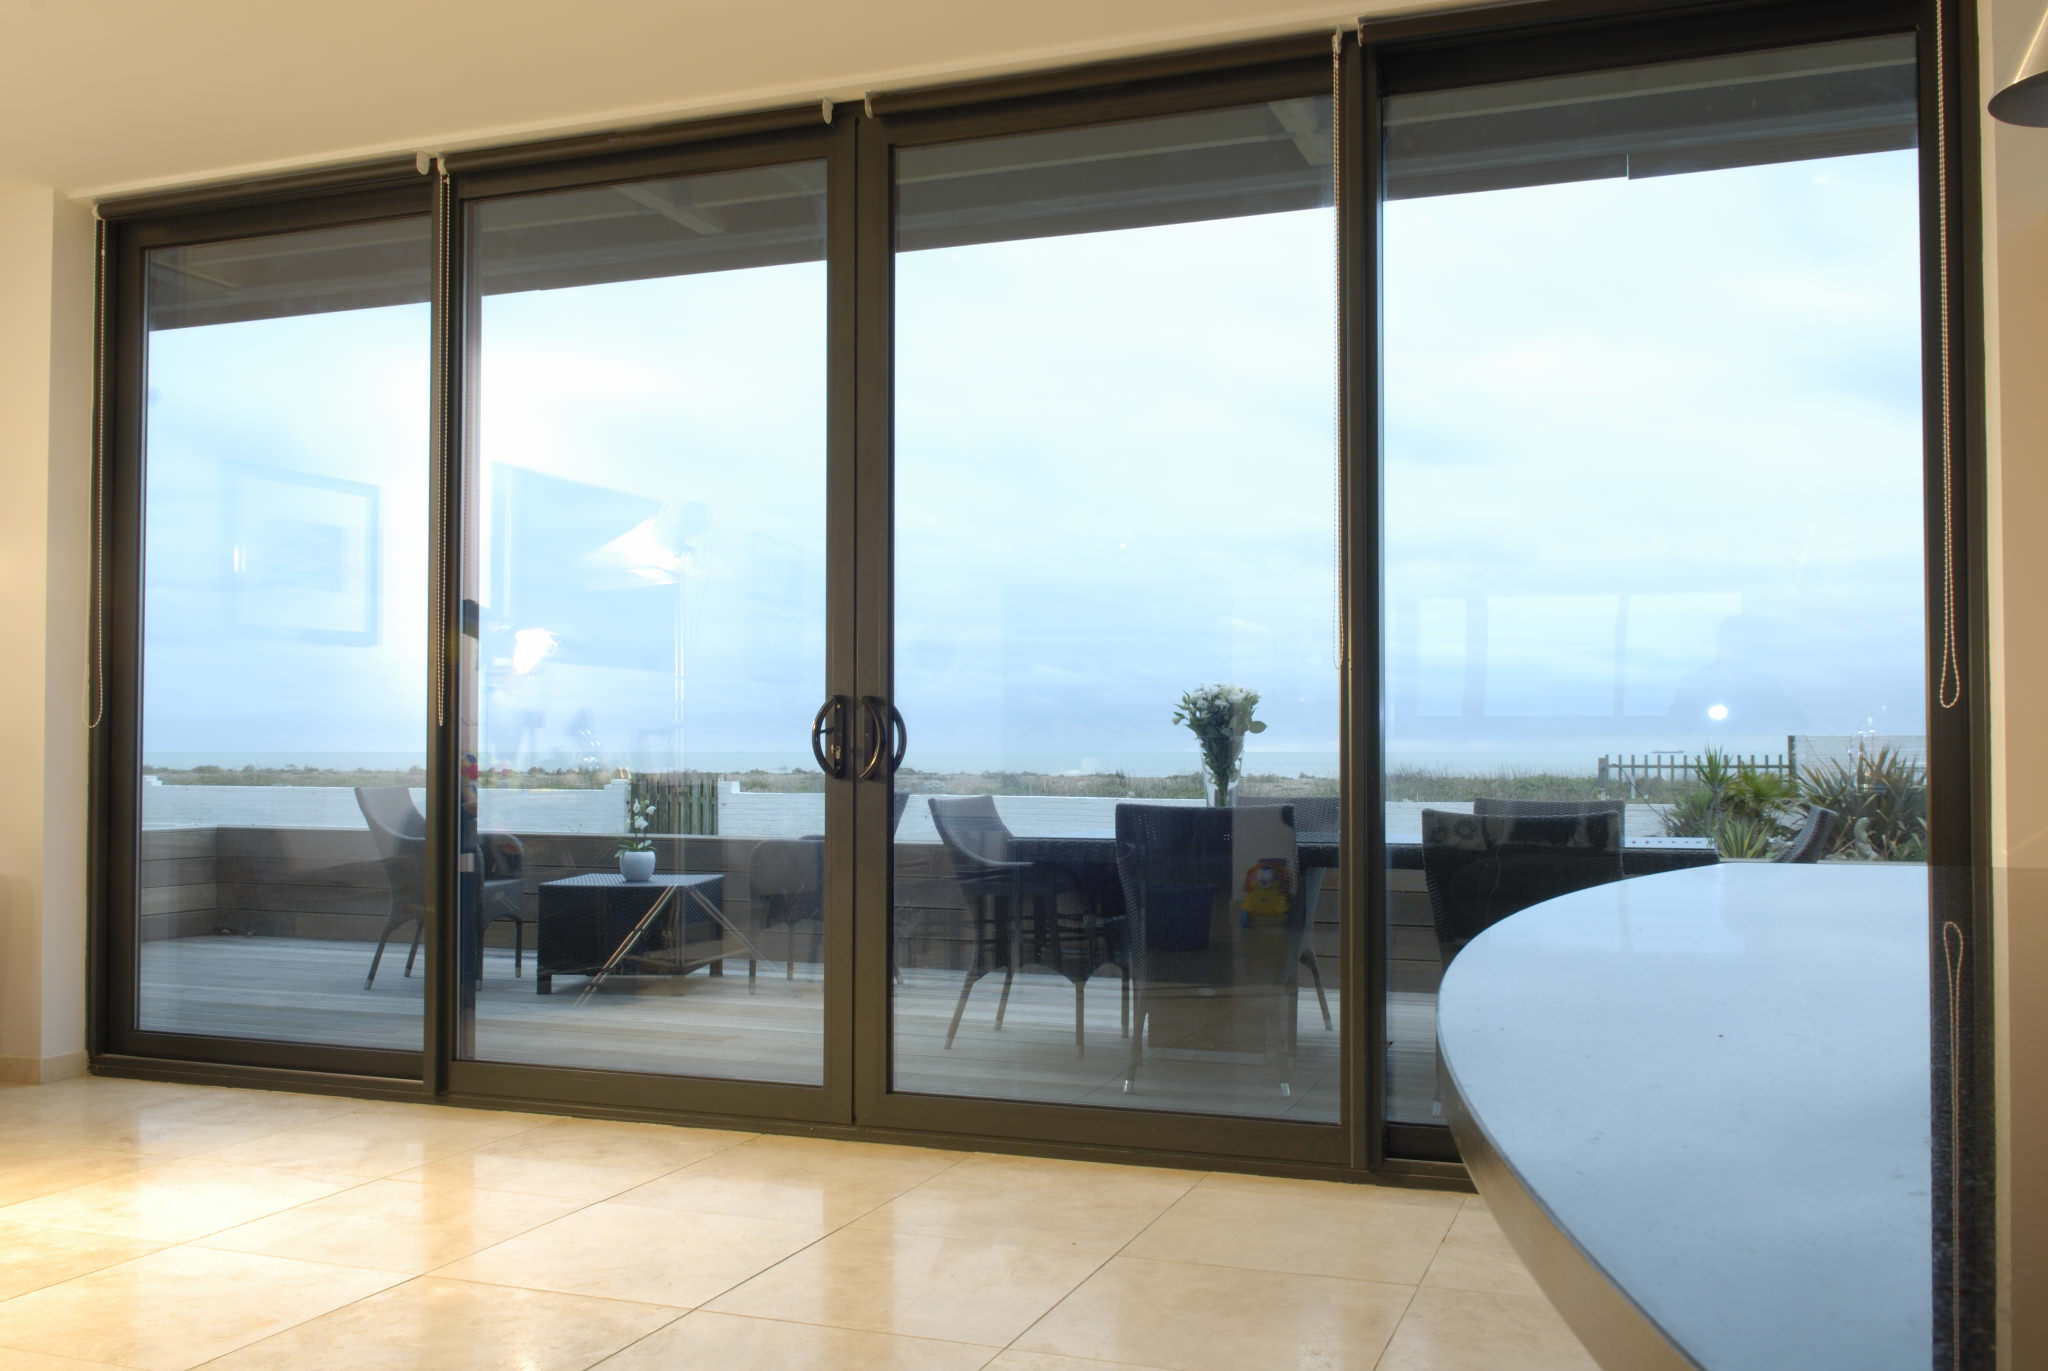 Aluminium patio doors kedleston derbyshire and derby for Aluminium patio doors